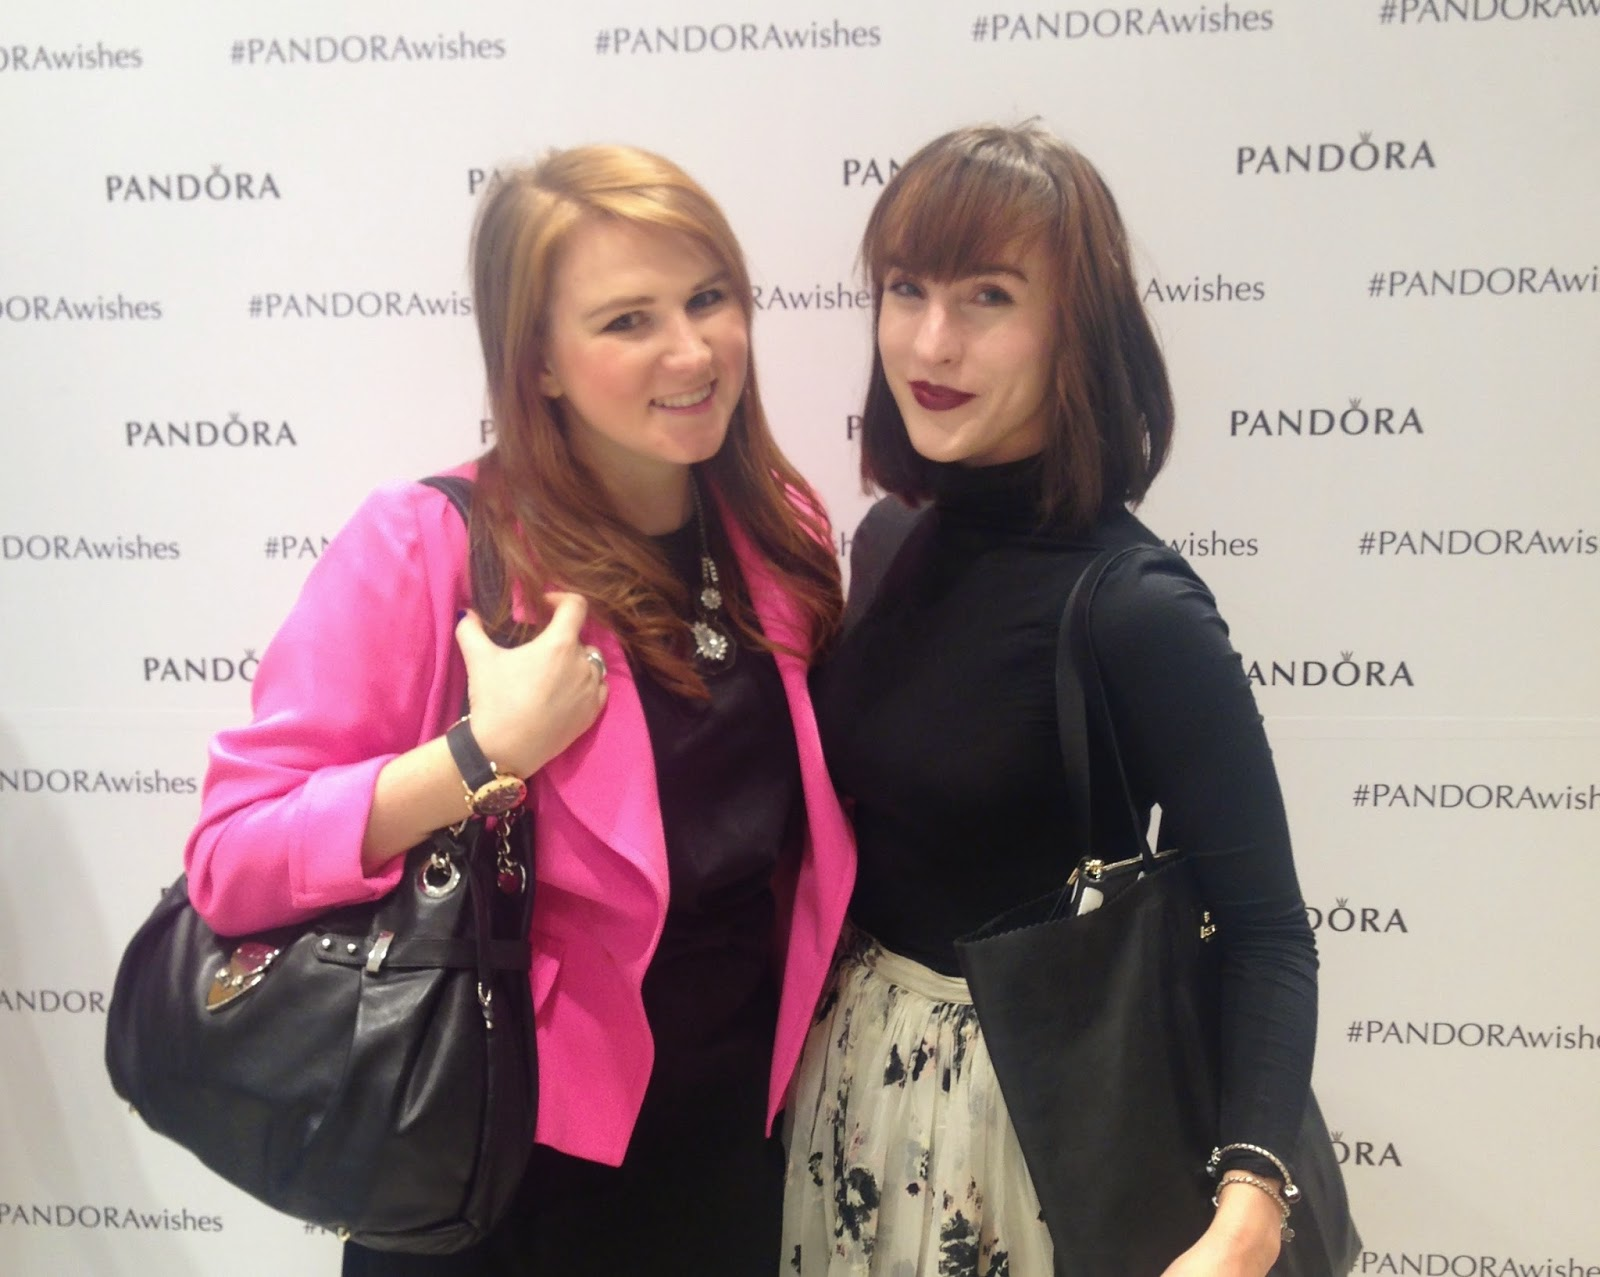 pandora wishes fashion bloggers pretty posh oh my gosh